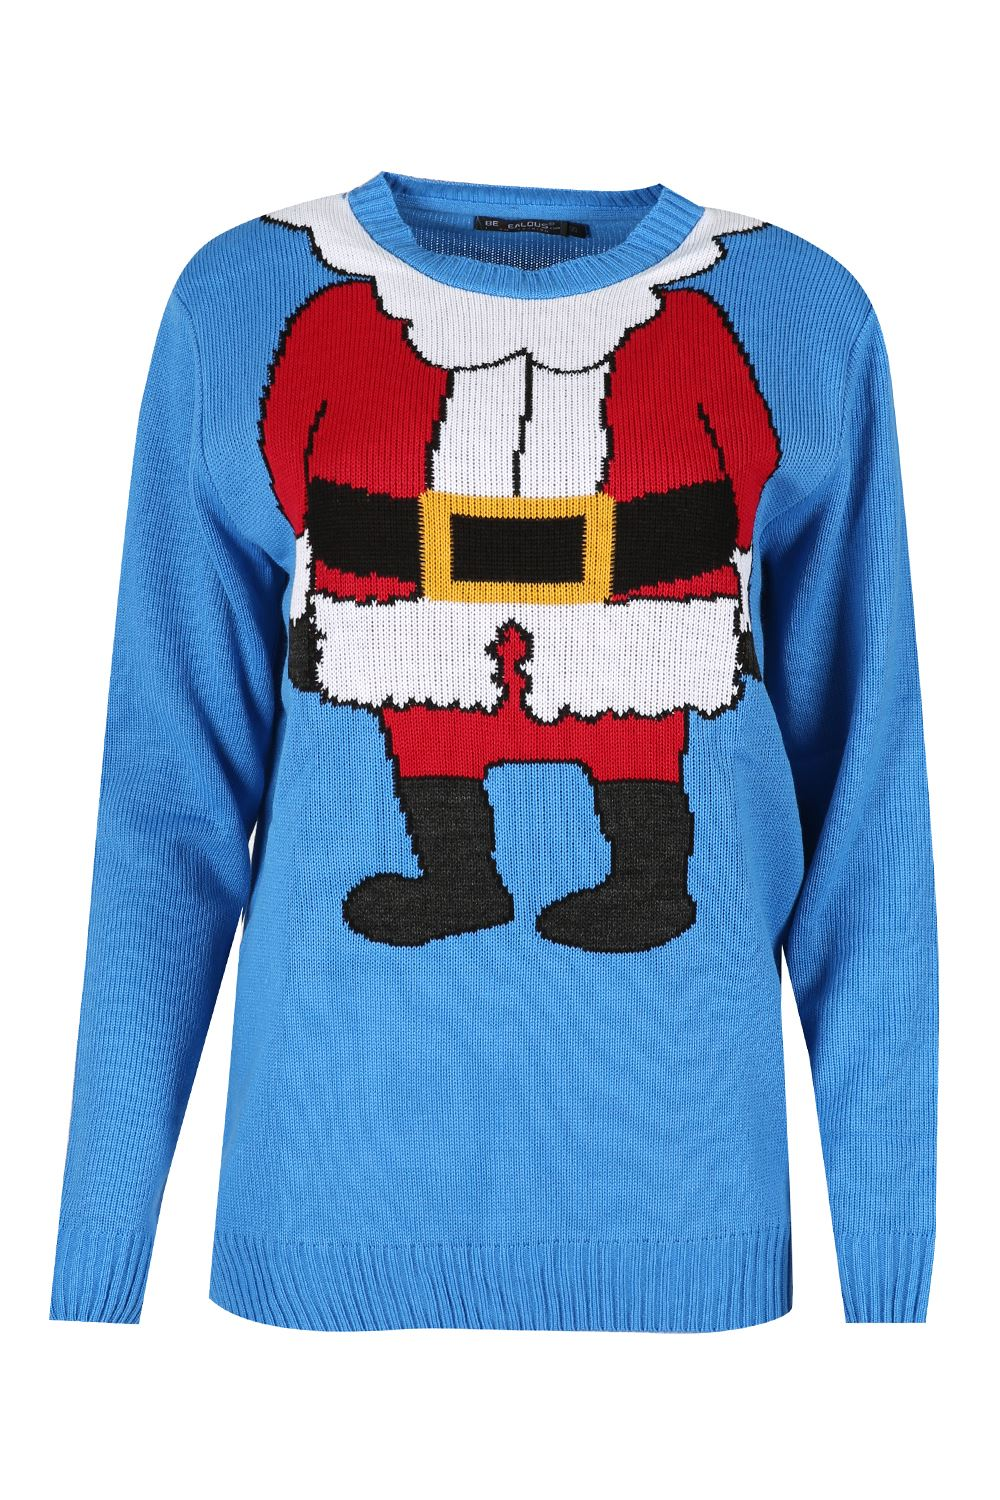 Find great deals on eBay for oversized christmas jumper. Shop with confidence.